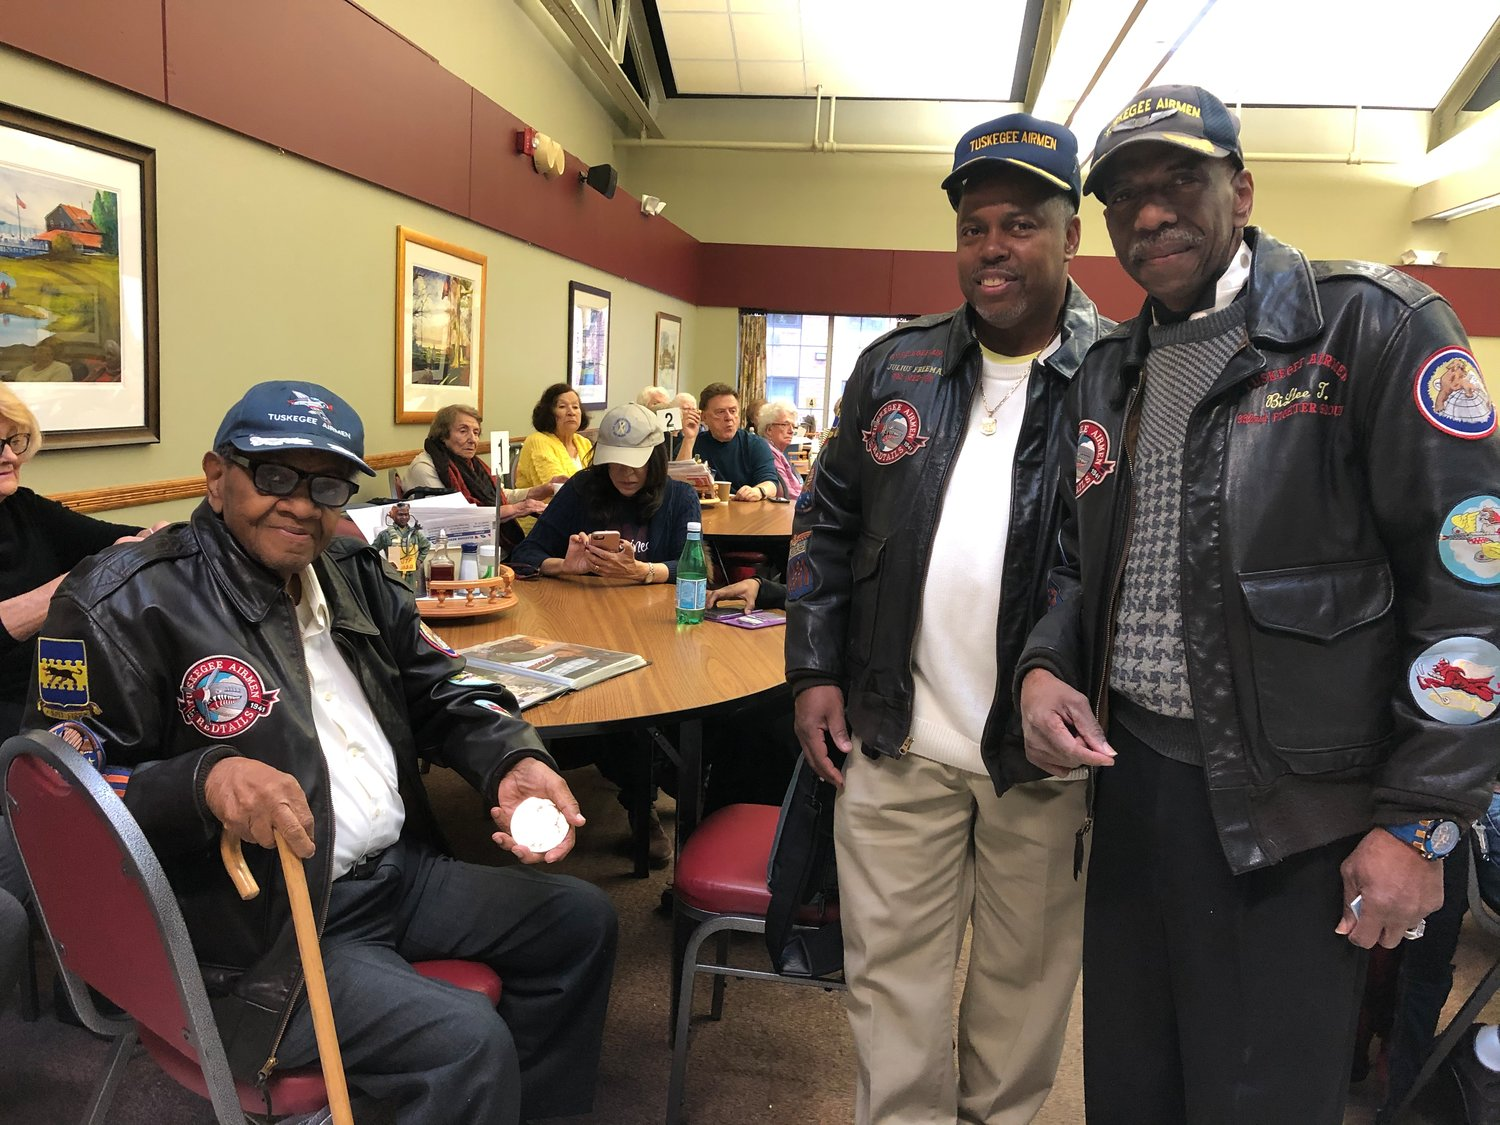 Tuskegee Airmen historians William Thomas Jr., near right, and Joe Martin with Tuskegee Airman William Johnson at the Glen Cove Senior Center.